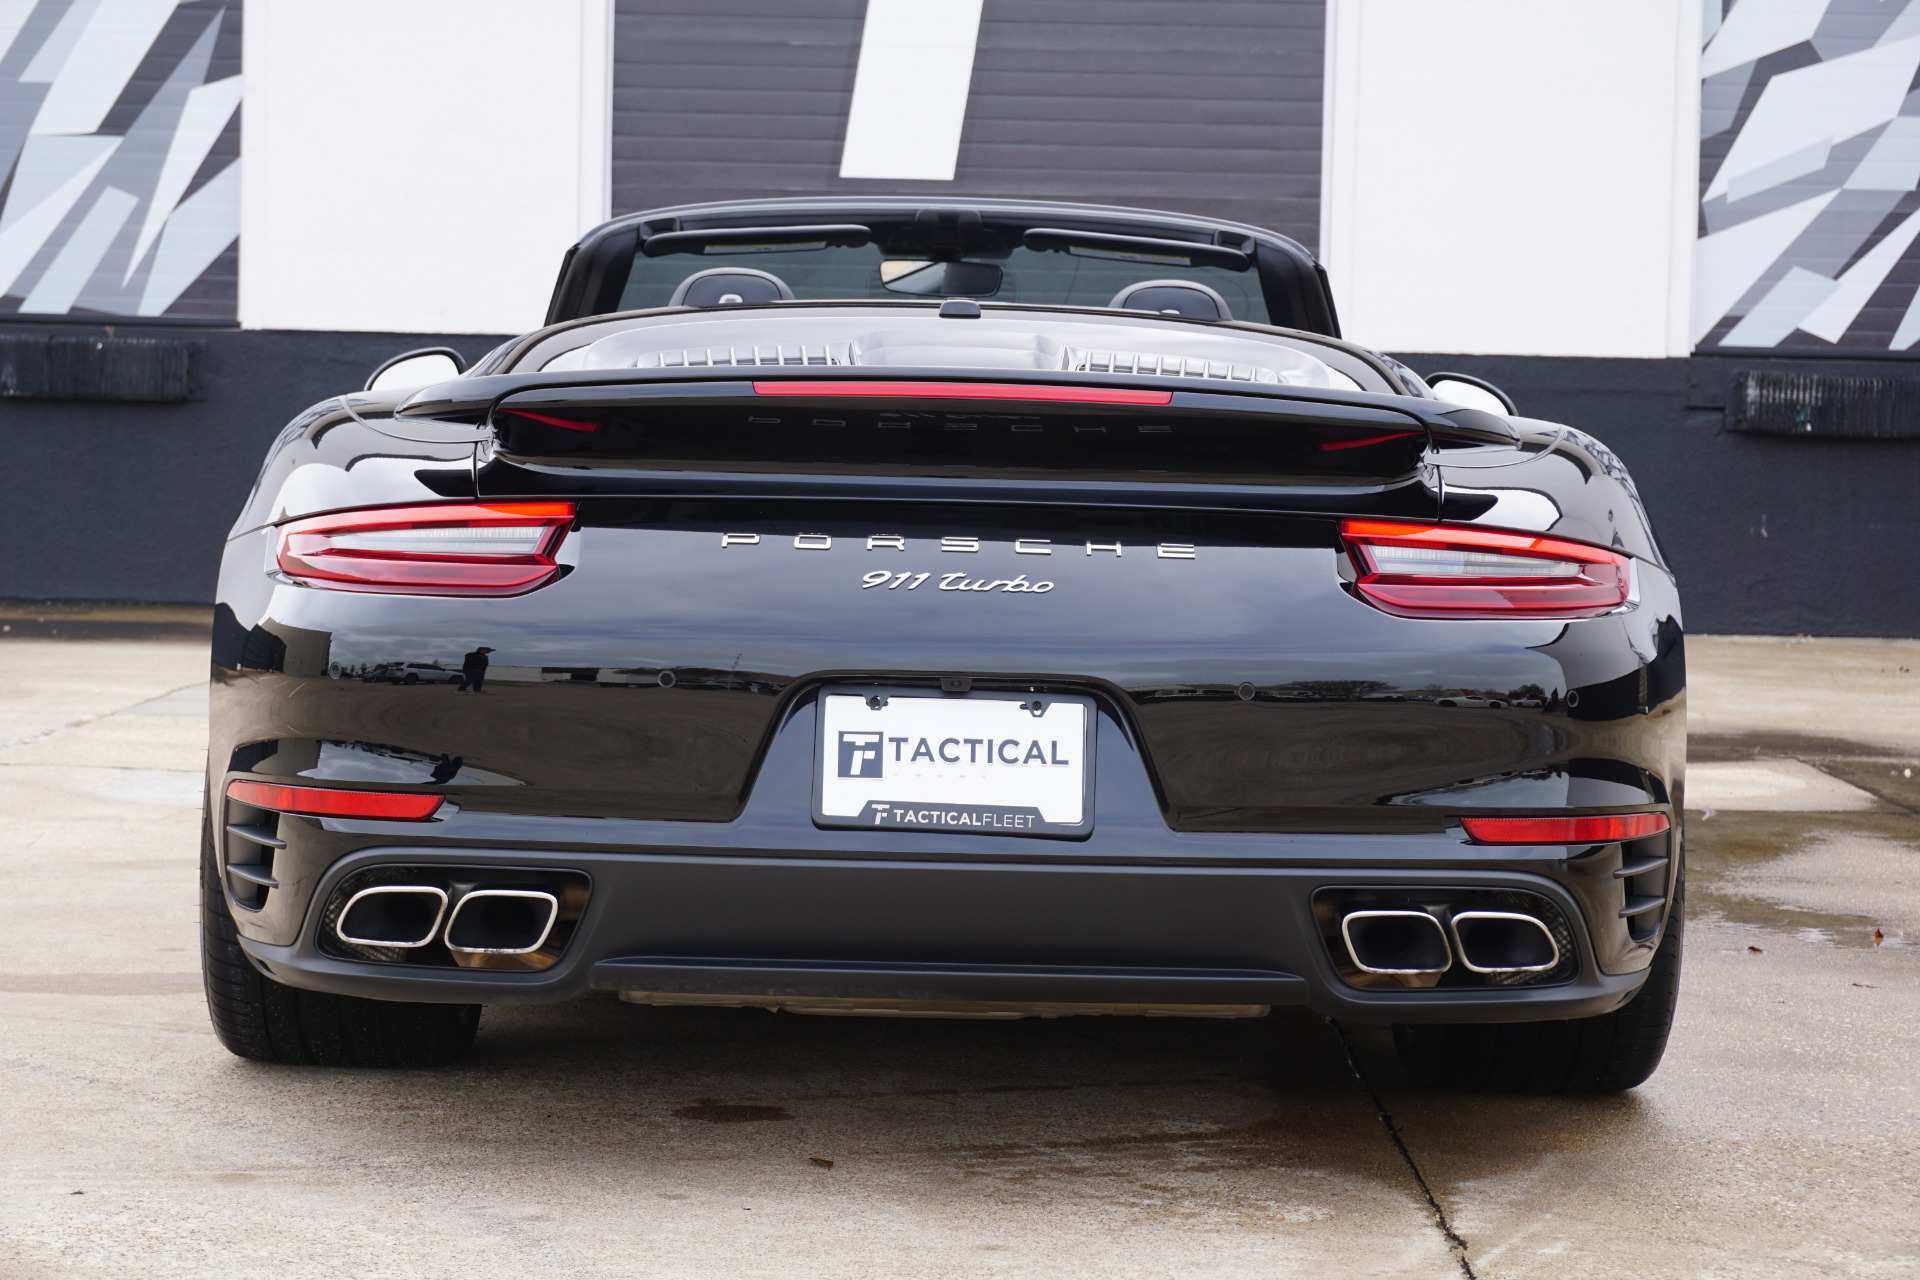 Used-2018-Porsche-911-Turbo